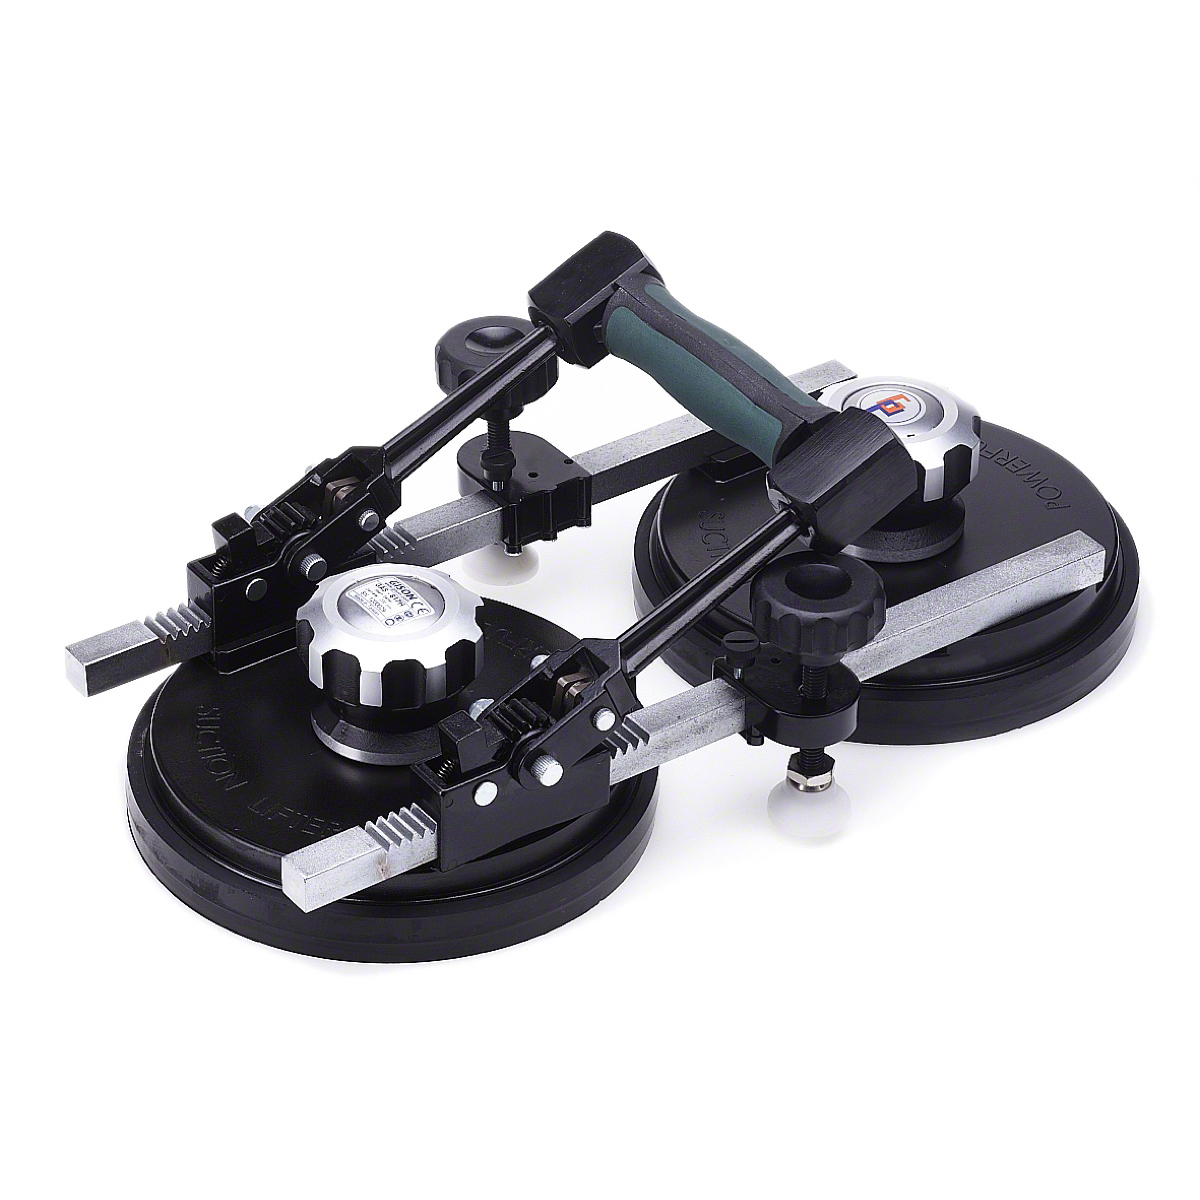 Seam setter and joint leveller with dual dials, two suction cups and single handle